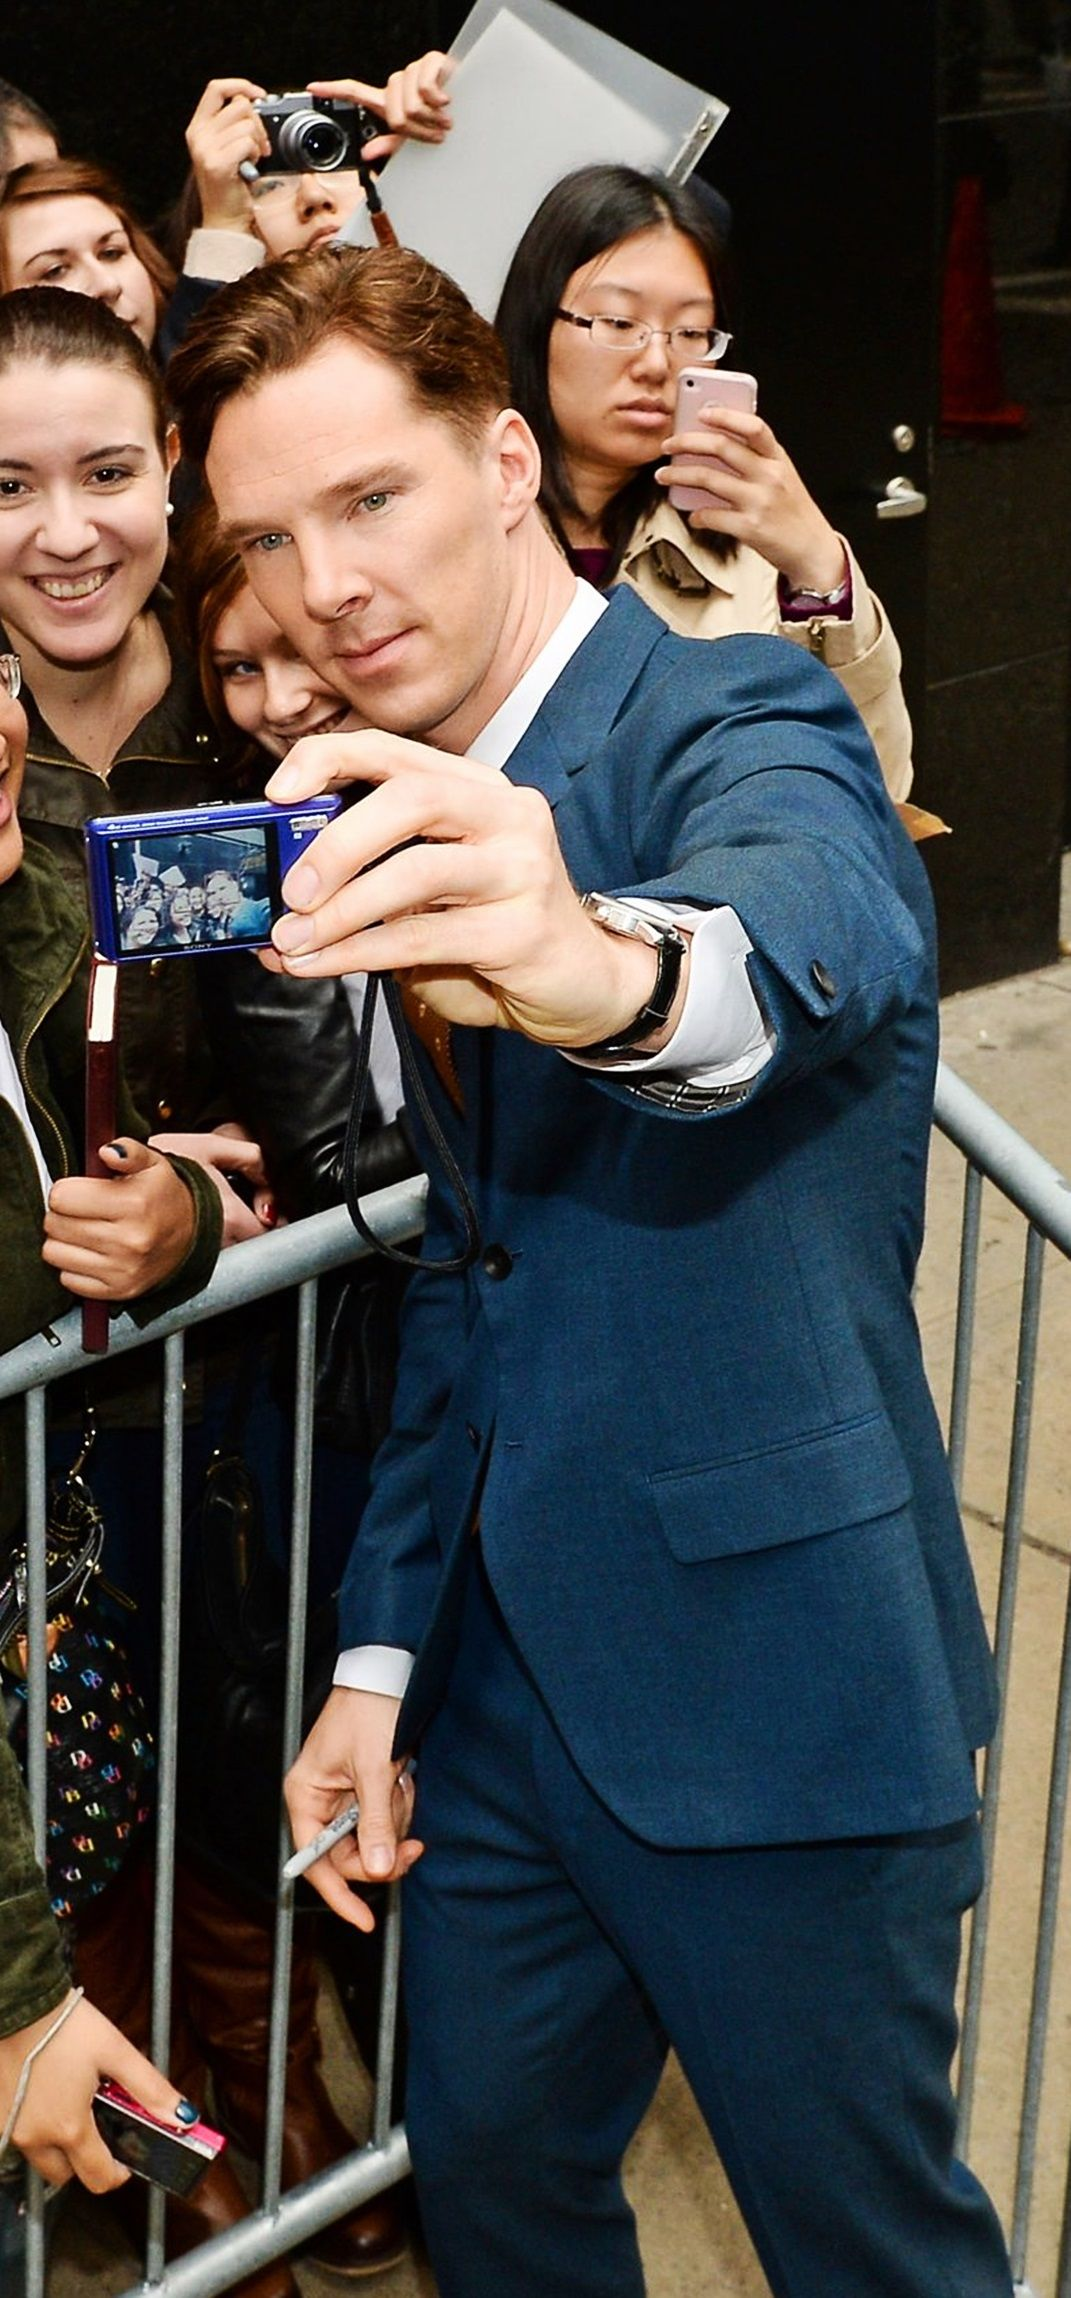 Benedict Cumberbatch is a sweetheart! <3